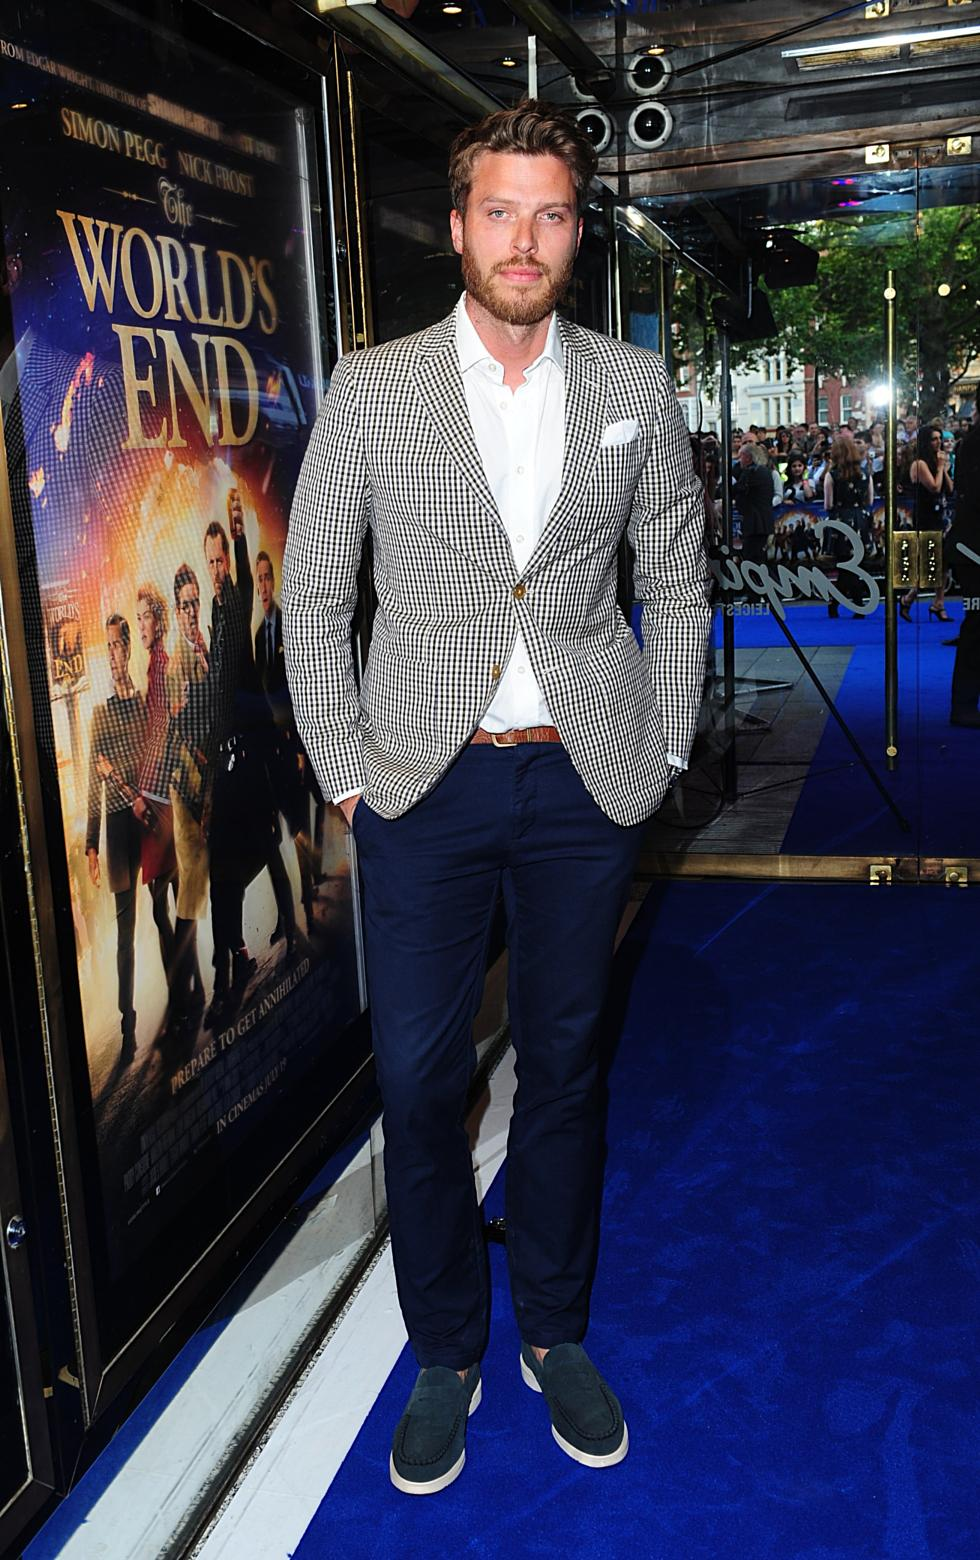 gallery_movies-the-worlds-end-premiere-rick-edwards.jpg